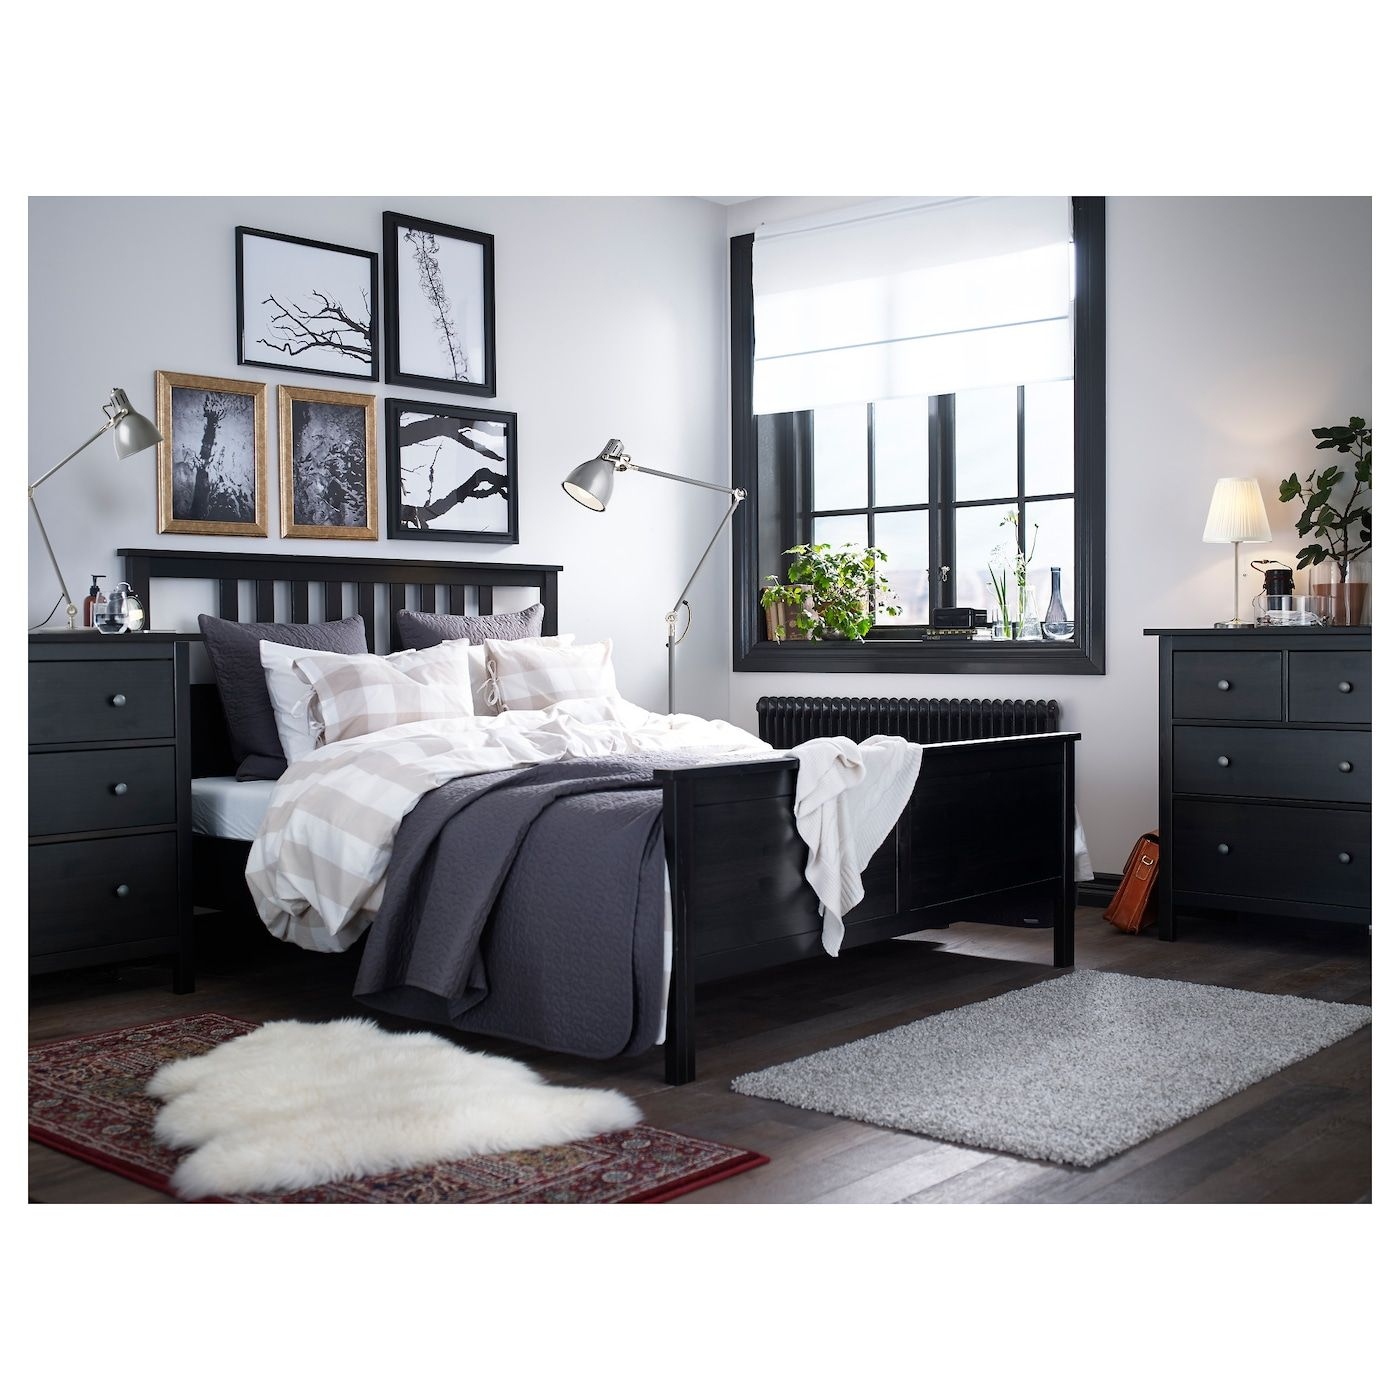 Shop For Furniture Home Accessories More Ikea Bed Bed Frame Ikea Finds